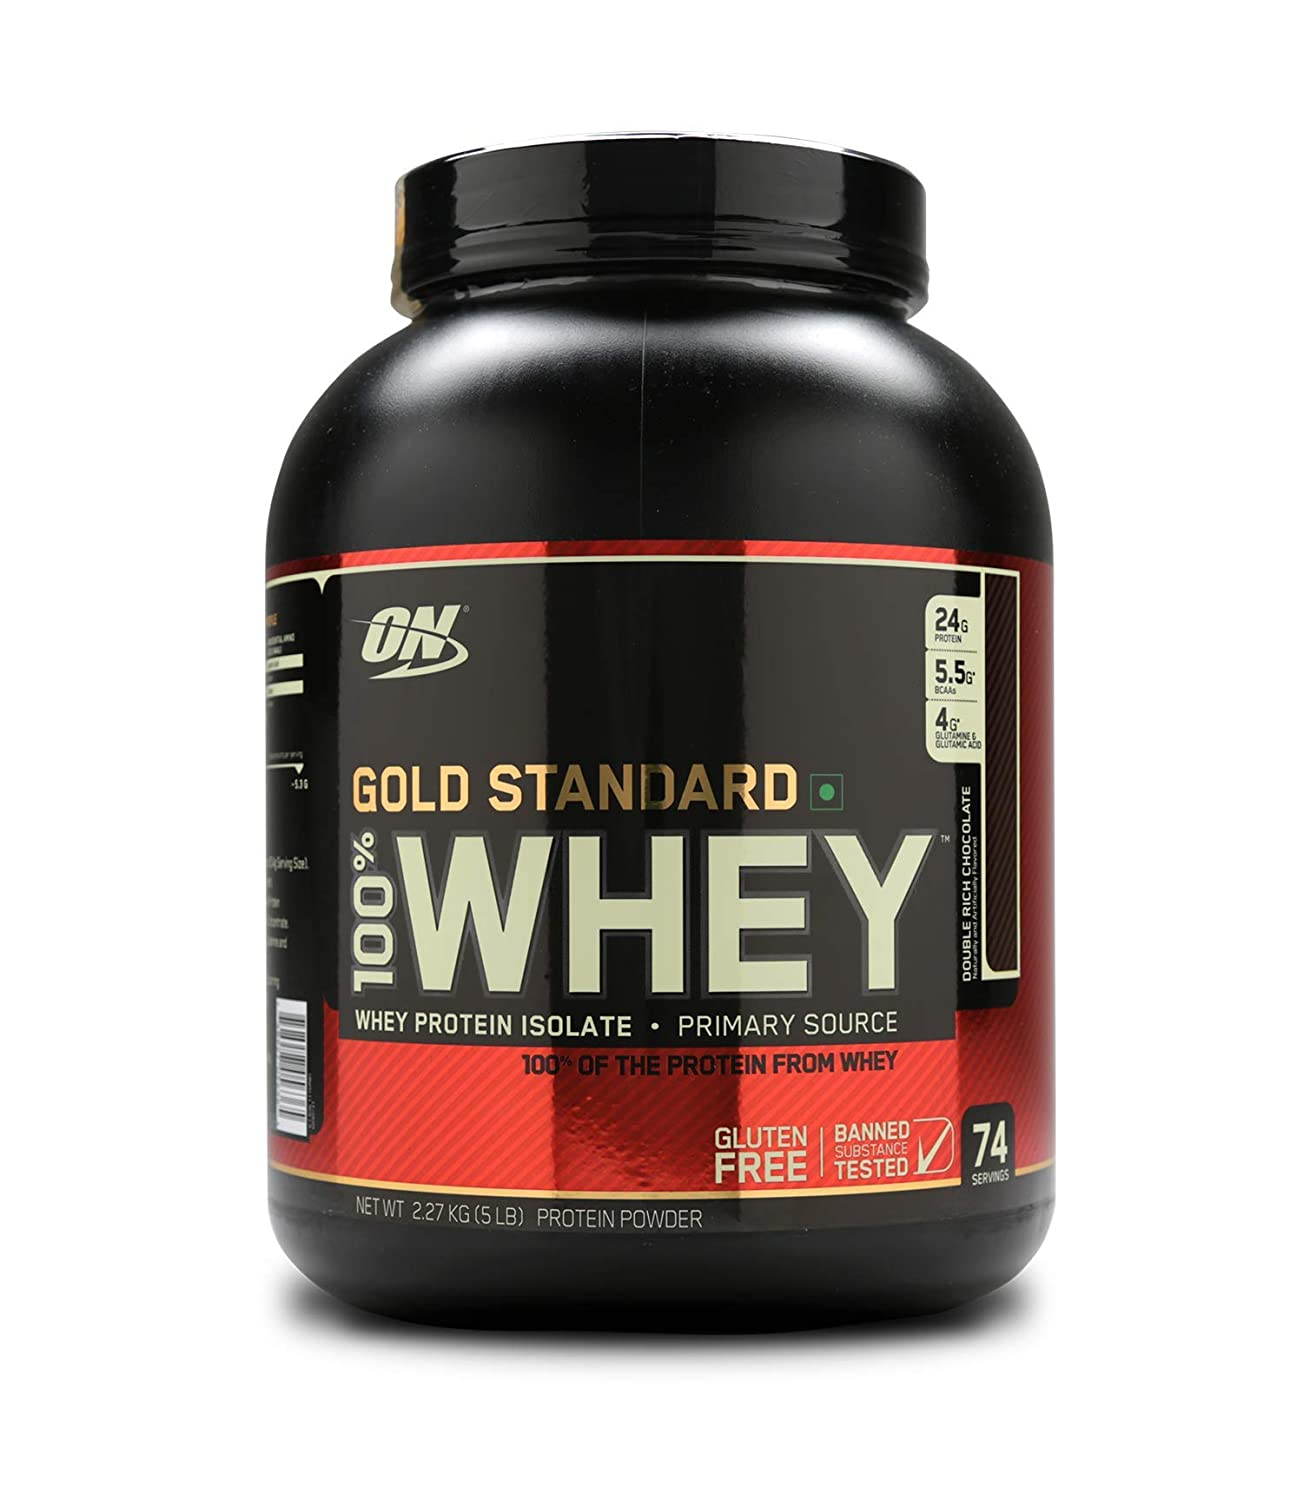 86b36056e Optimum Nutrition (ON) Gold Standard 100% Whey Protein Powder - 5 ...